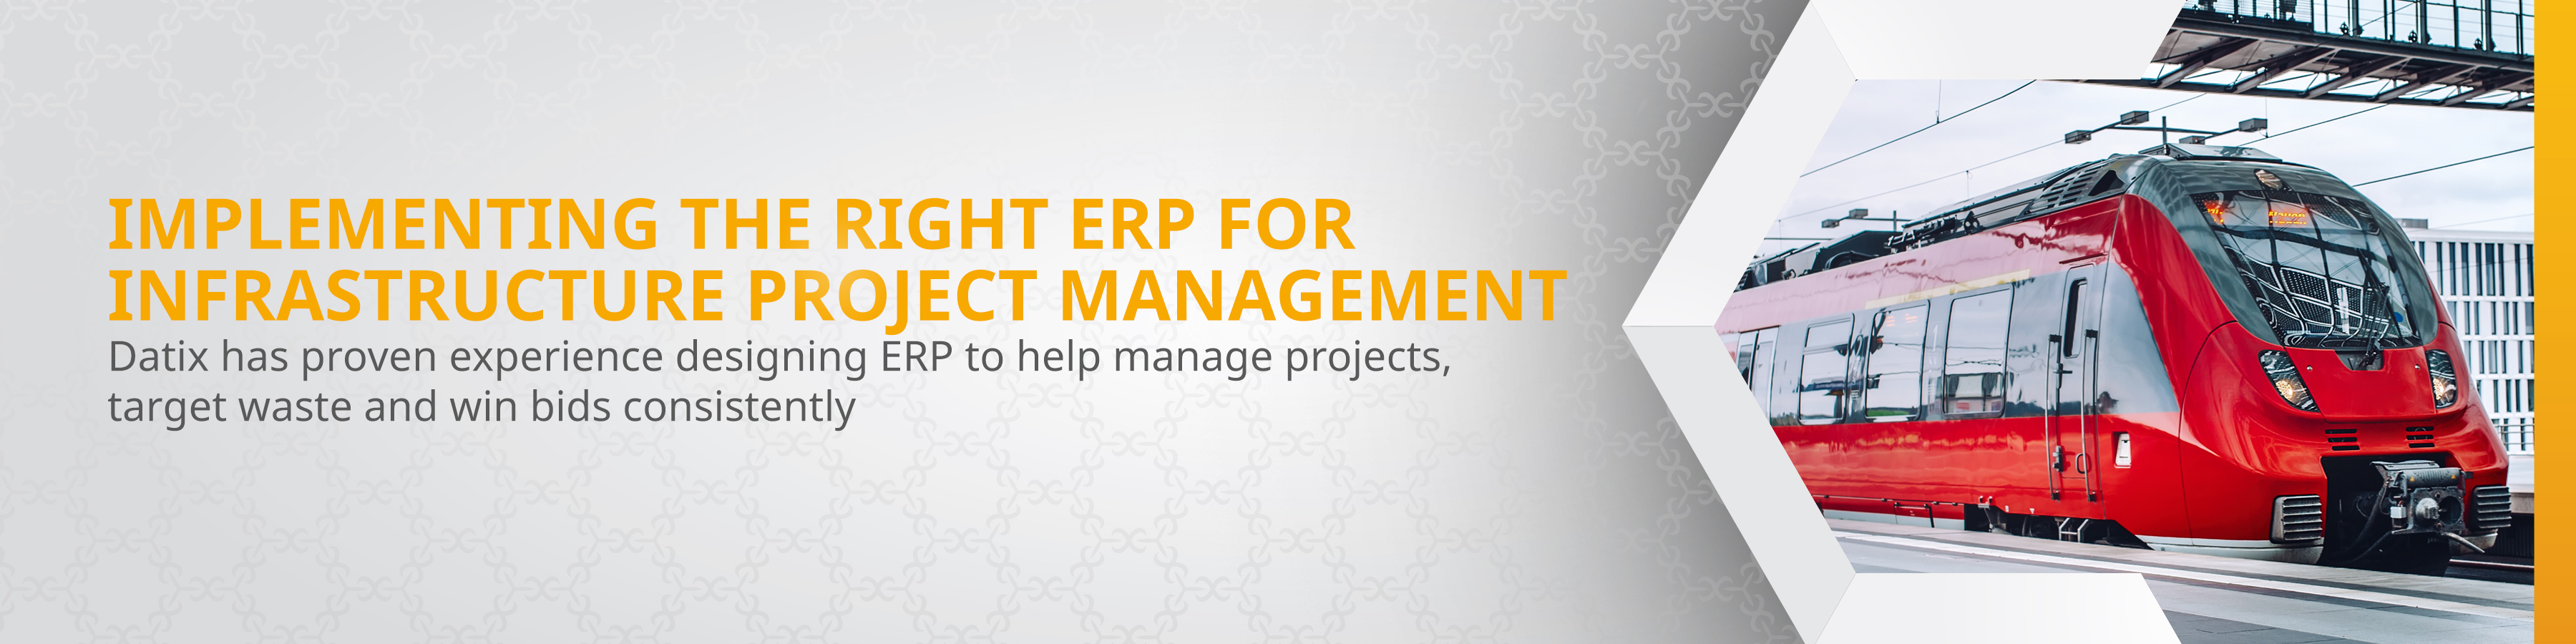 Infrastructure Project Management ERP